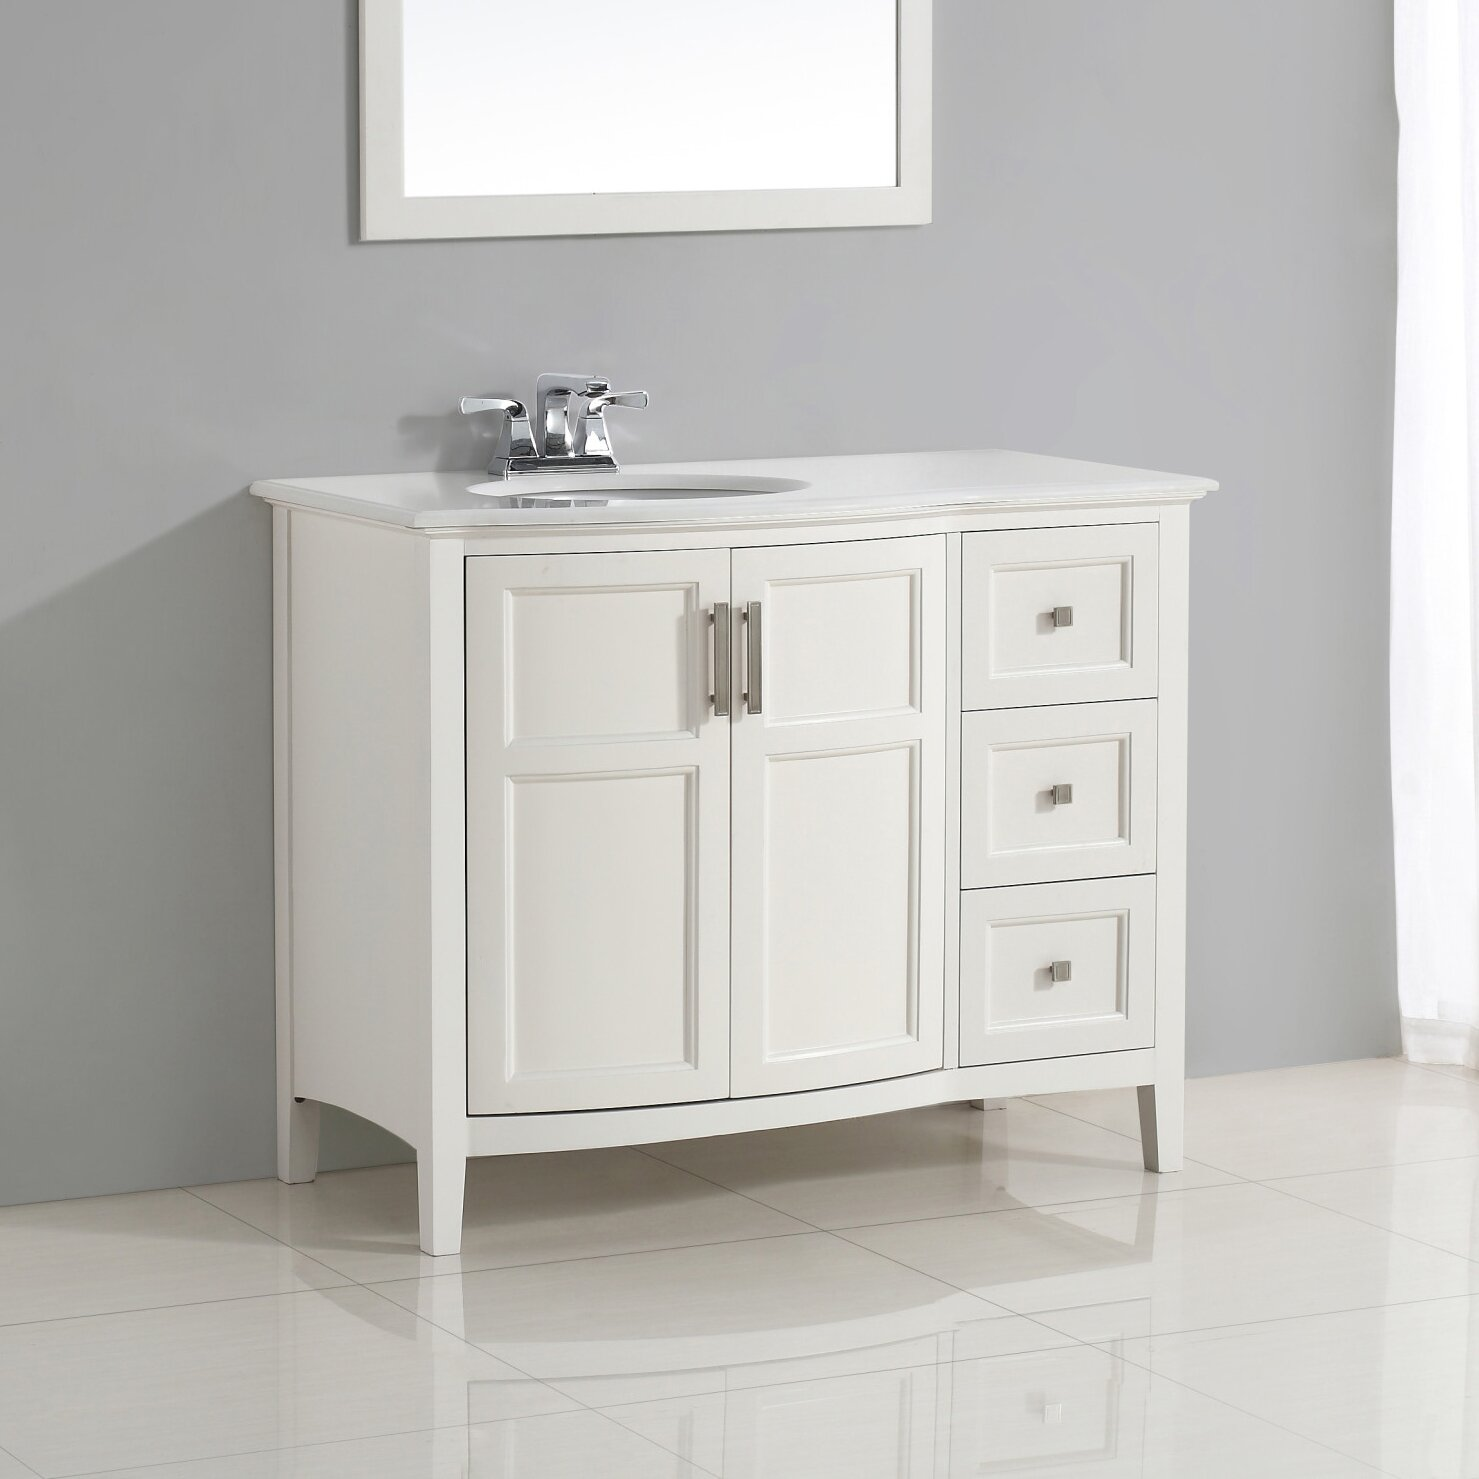 Vanity Front View : Simpli home winston quot single rounded front bath vanity